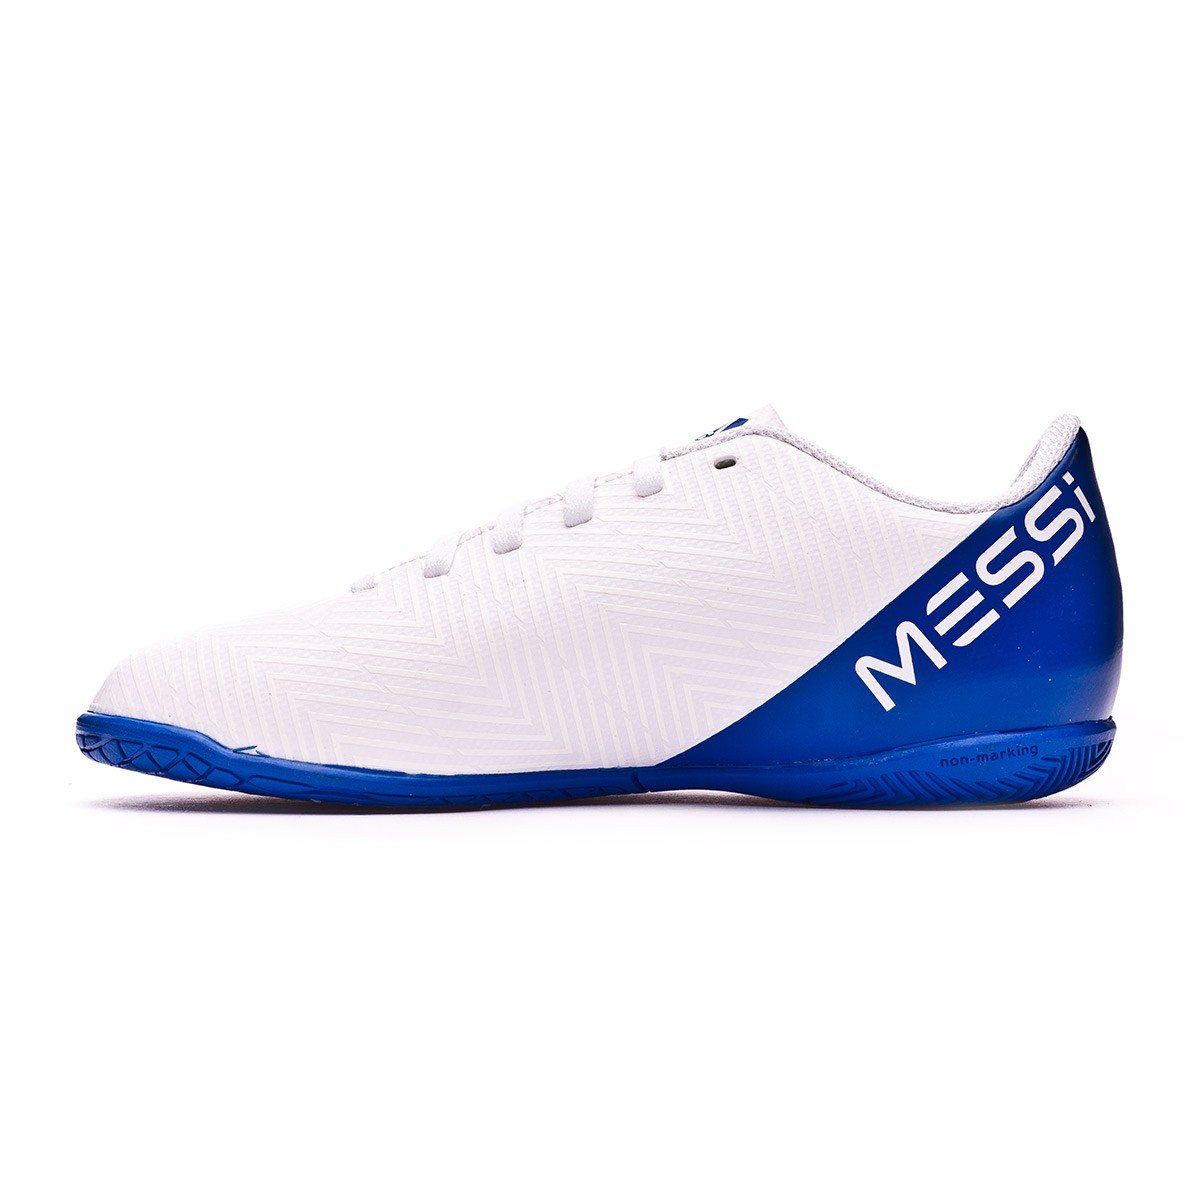 promo code 05129 c419b ... Zapatilla Nemeziz Messi Tango 18.4 IN Niño White-Core black-Football  blue. CATEGORY